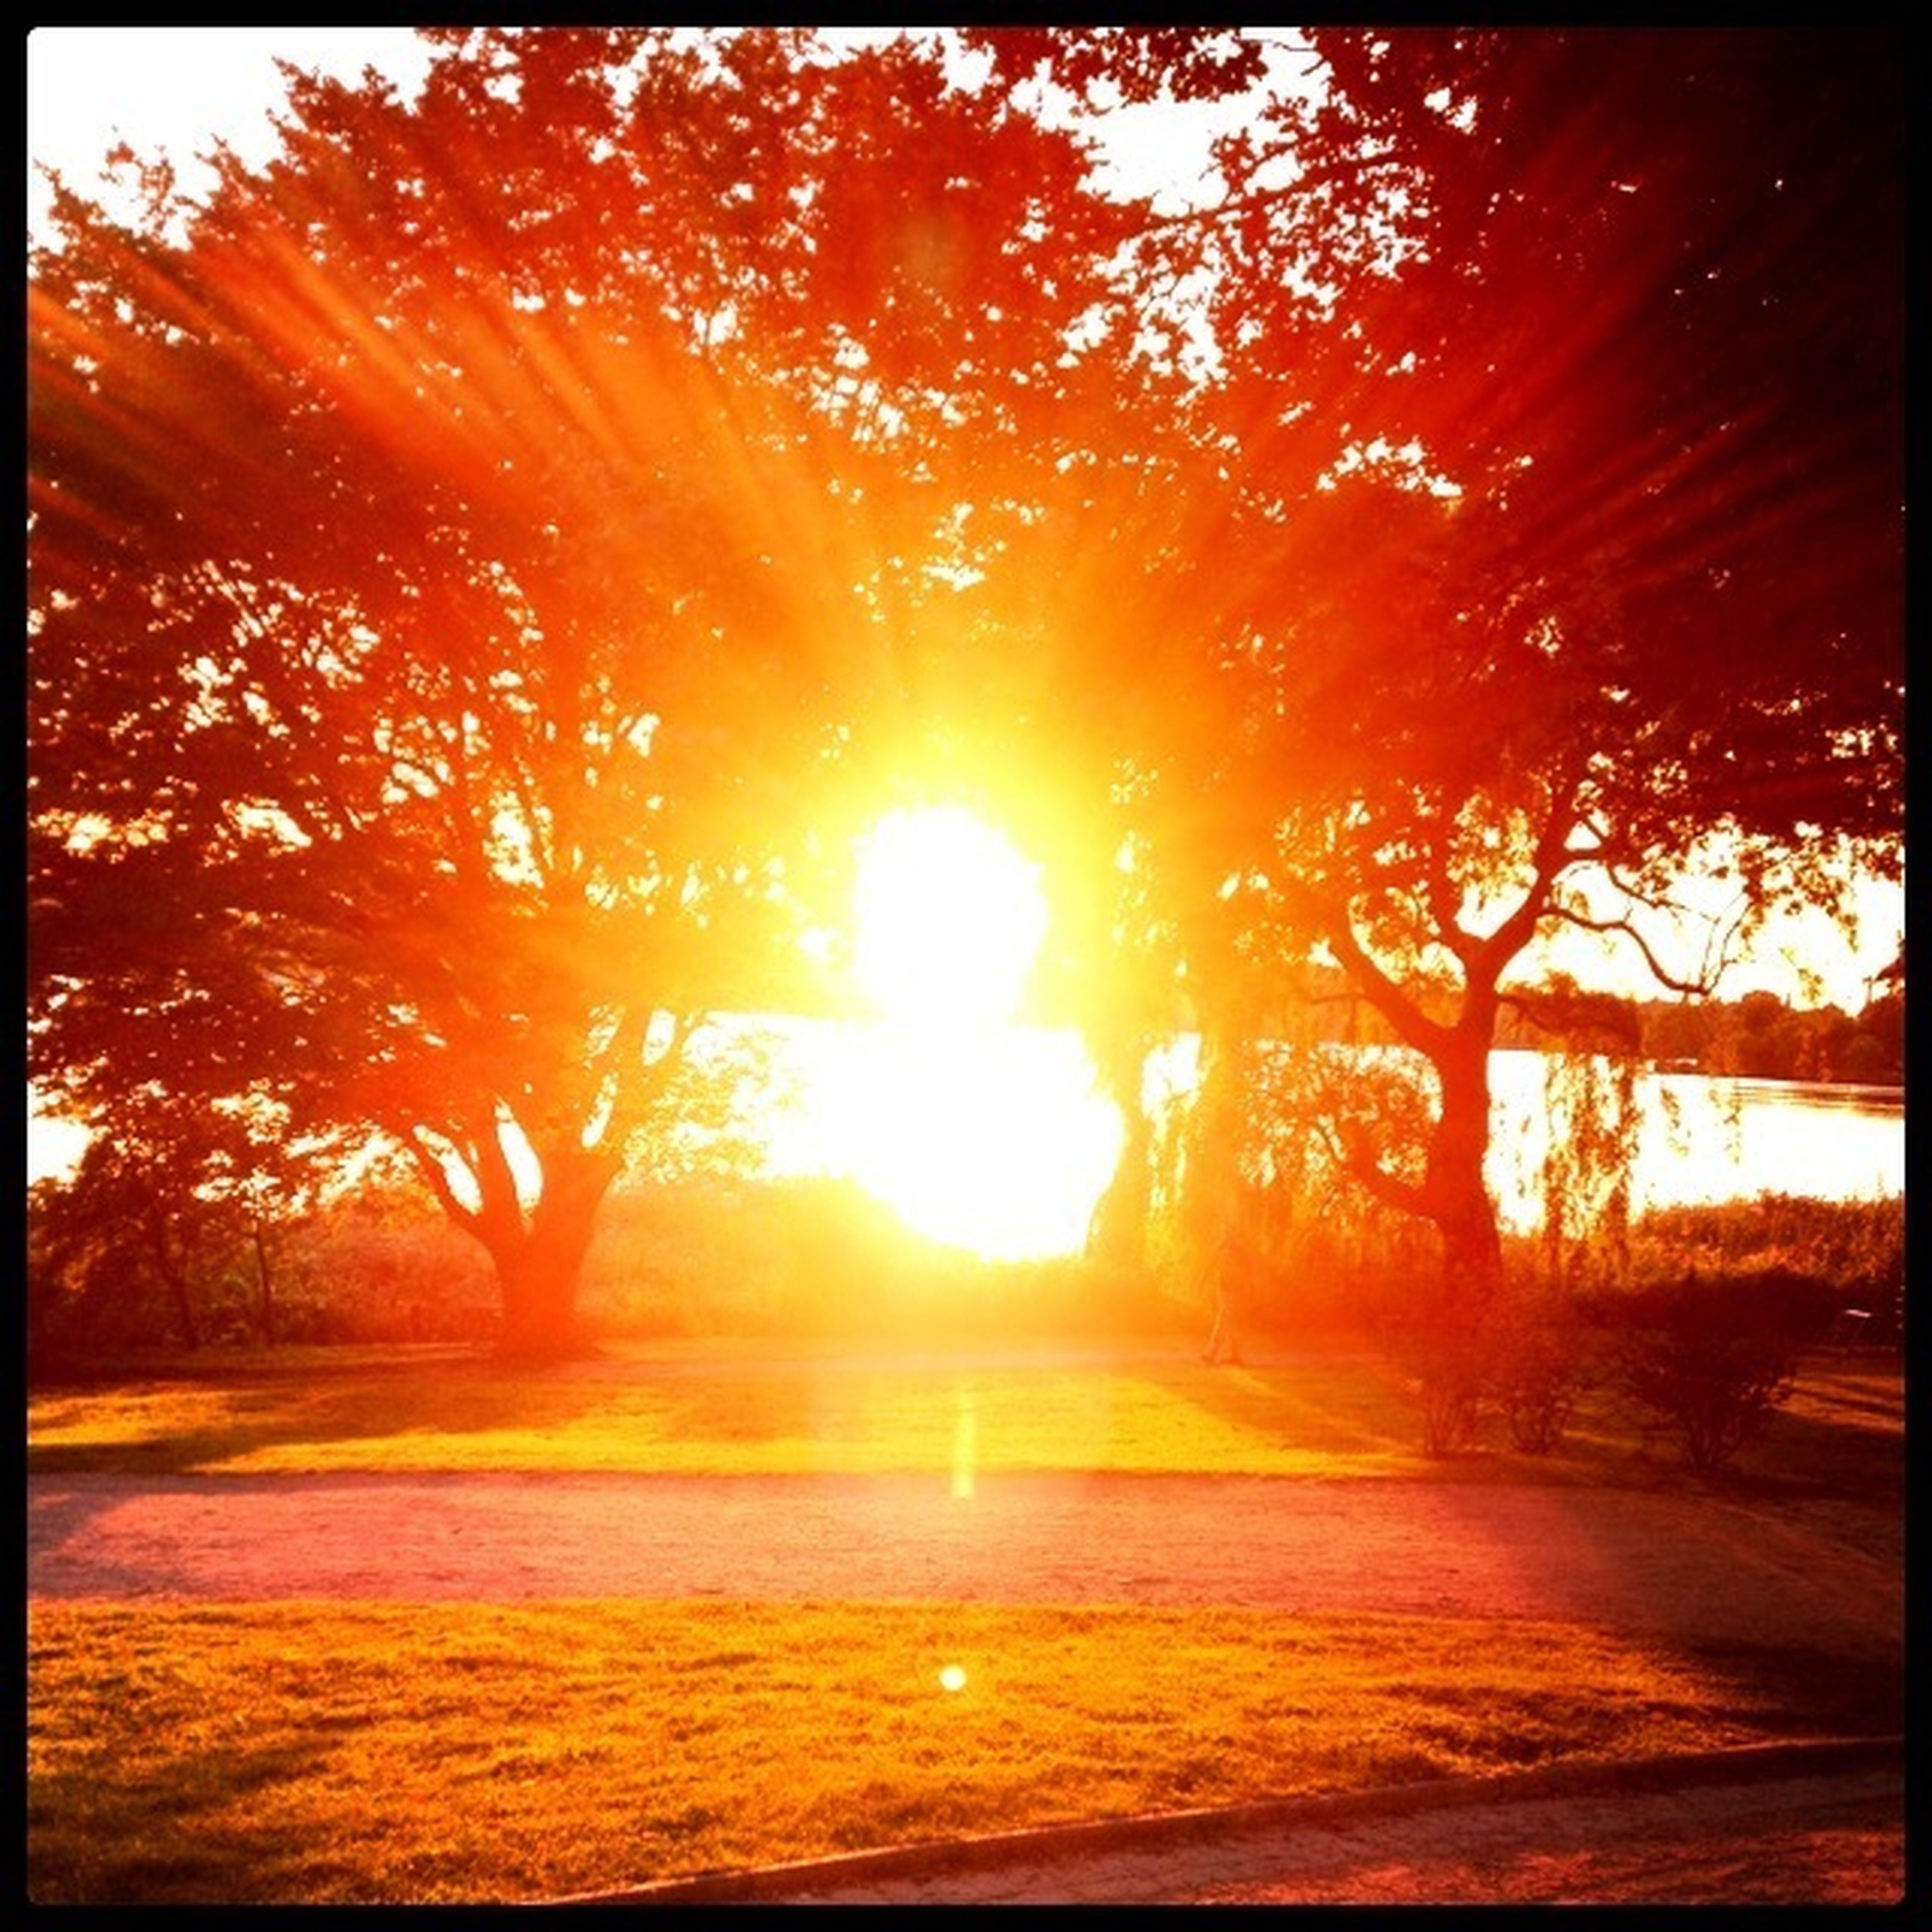 sun, tree, sunset, sunlight, sunbeam, orange color, tranquility, transfer print, tranquil scene, beauty in nature, lens flare, scenics, auto post production filter, nature, growth, idyllic, sky, outdoors, branch, no people